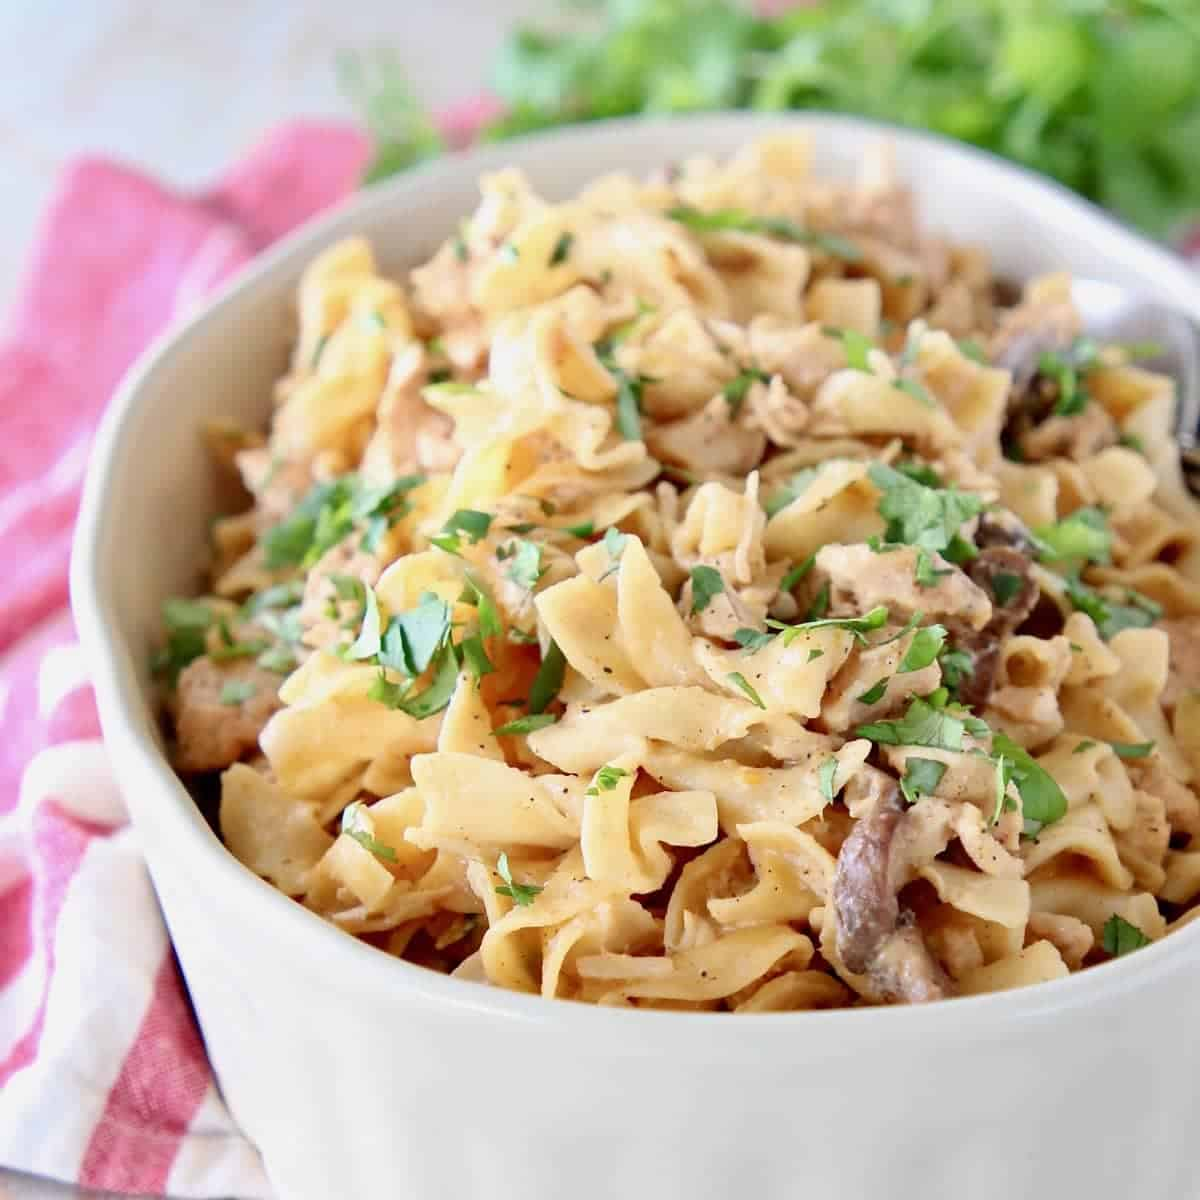 Chicken stroganoff with egg noodles in oval casserole dish with fresh parsley